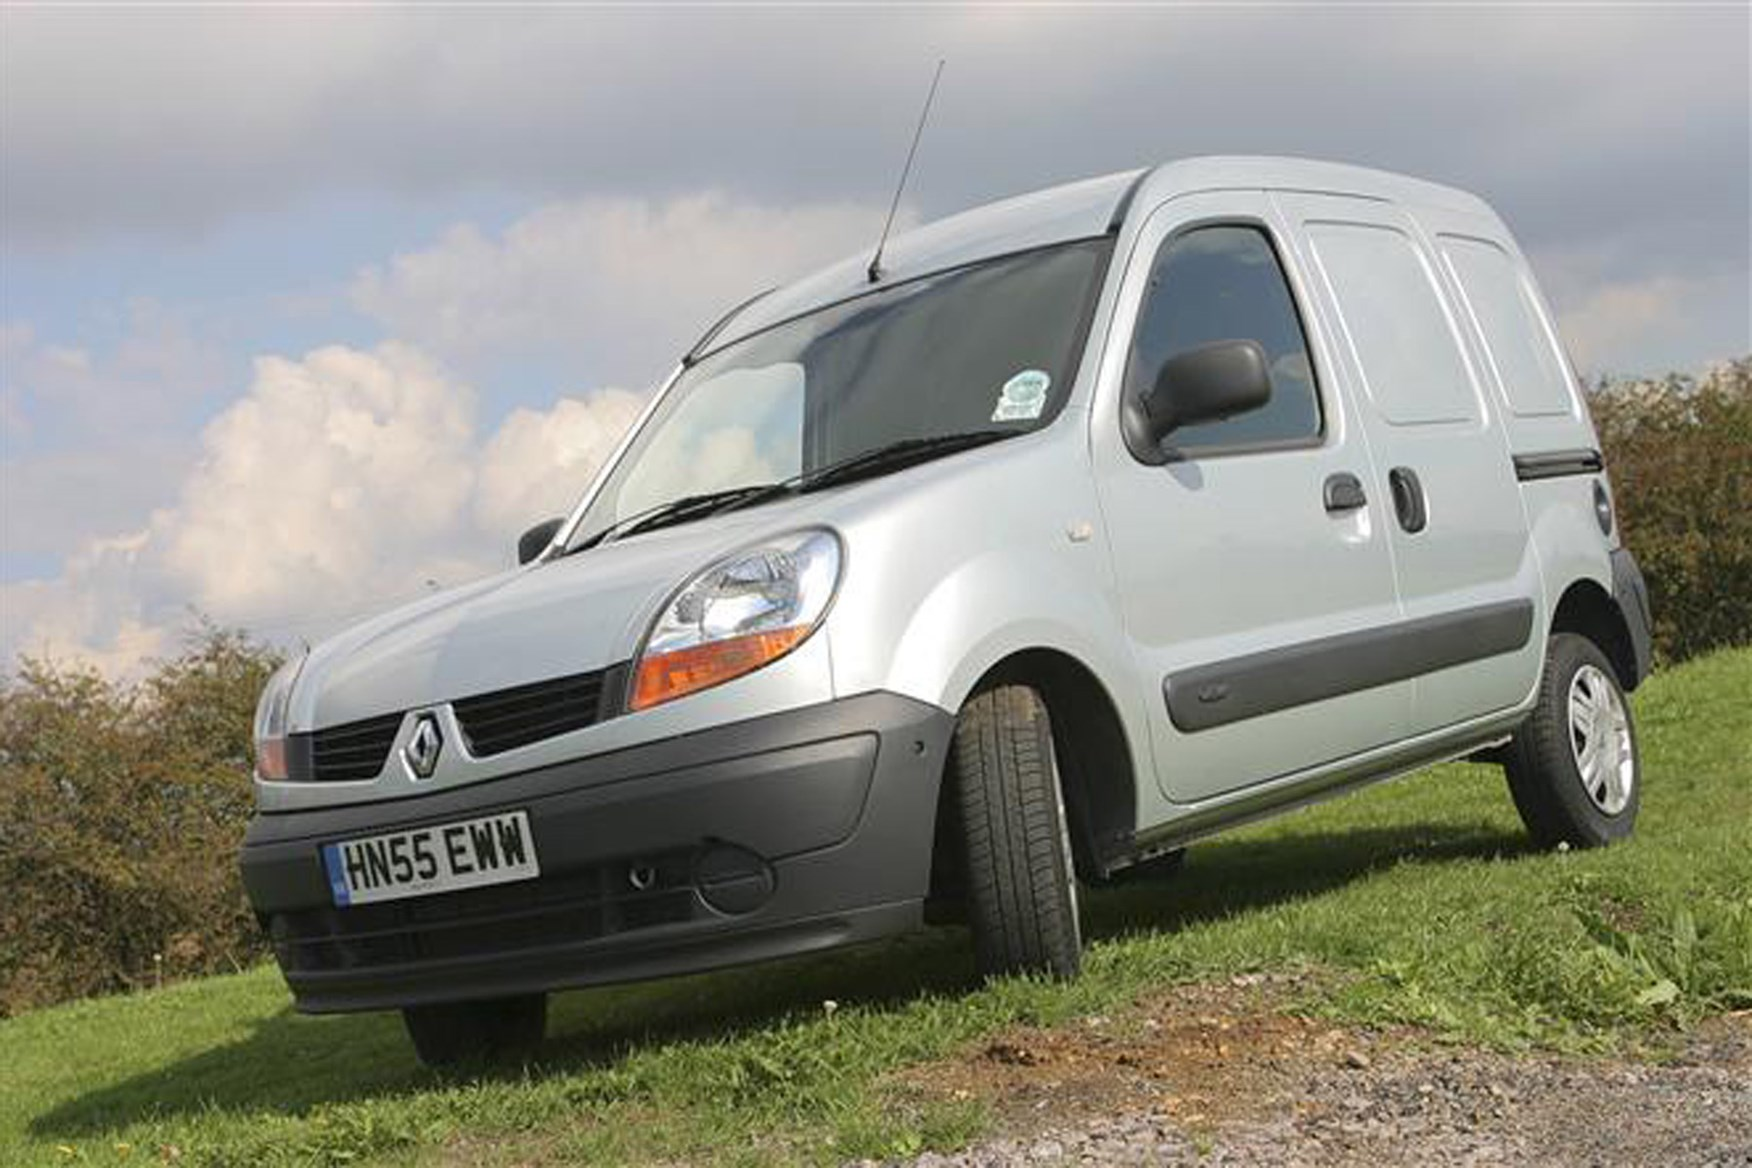 Renault Kangoo review on Parkers Vans - exterior